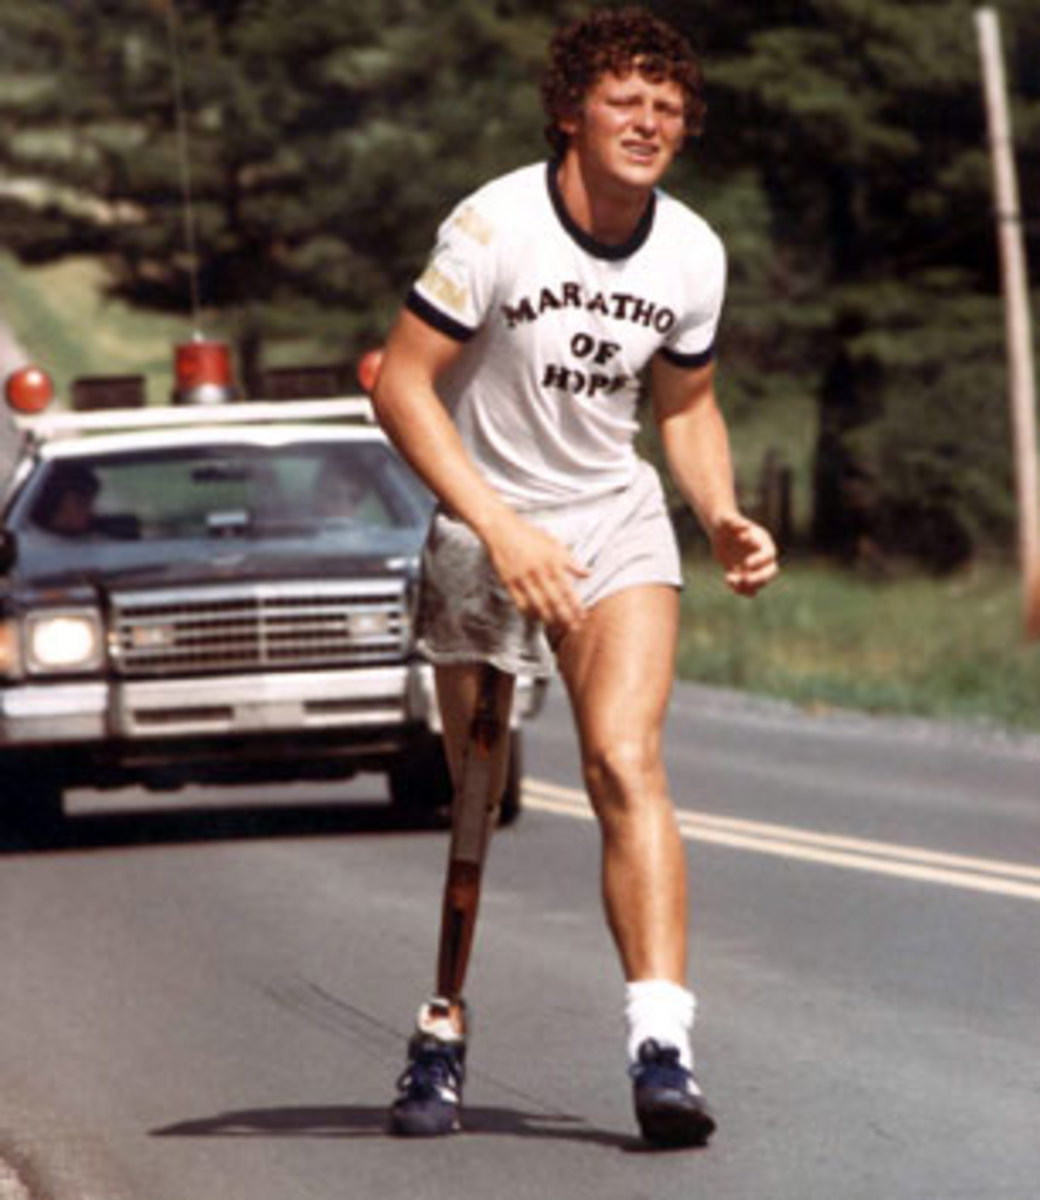 Terry Fox ran halfway across Canada trying to raise money for cancer research when he had only one leg.  Looking to him and other role models will inspire and motivate you.